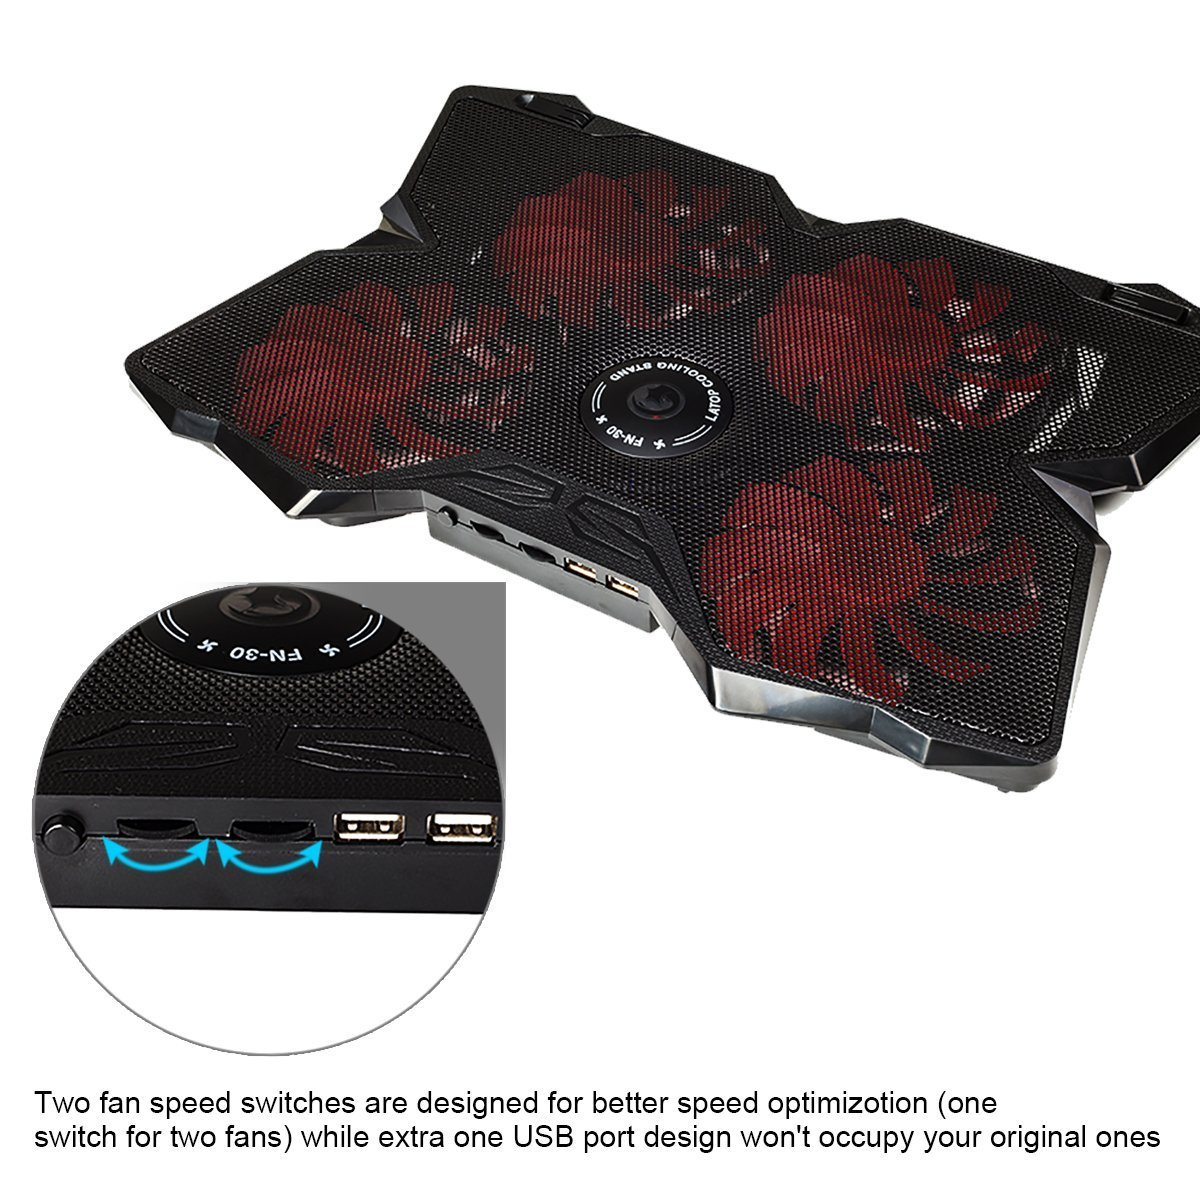 Marvo FN-30 Cooling Pad for 15.6 - 17 Inch Laptops with Four 120mm Fans at 1200 RPM ,Red by MARVO (Image #4)